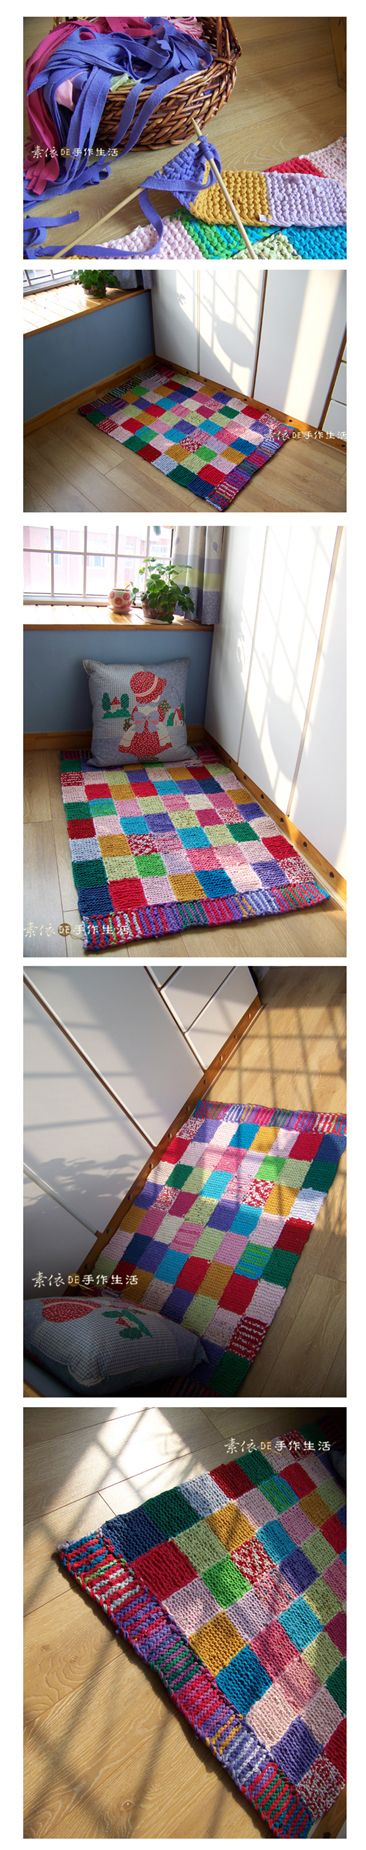 old T-shirts up-cycled into knitted rug